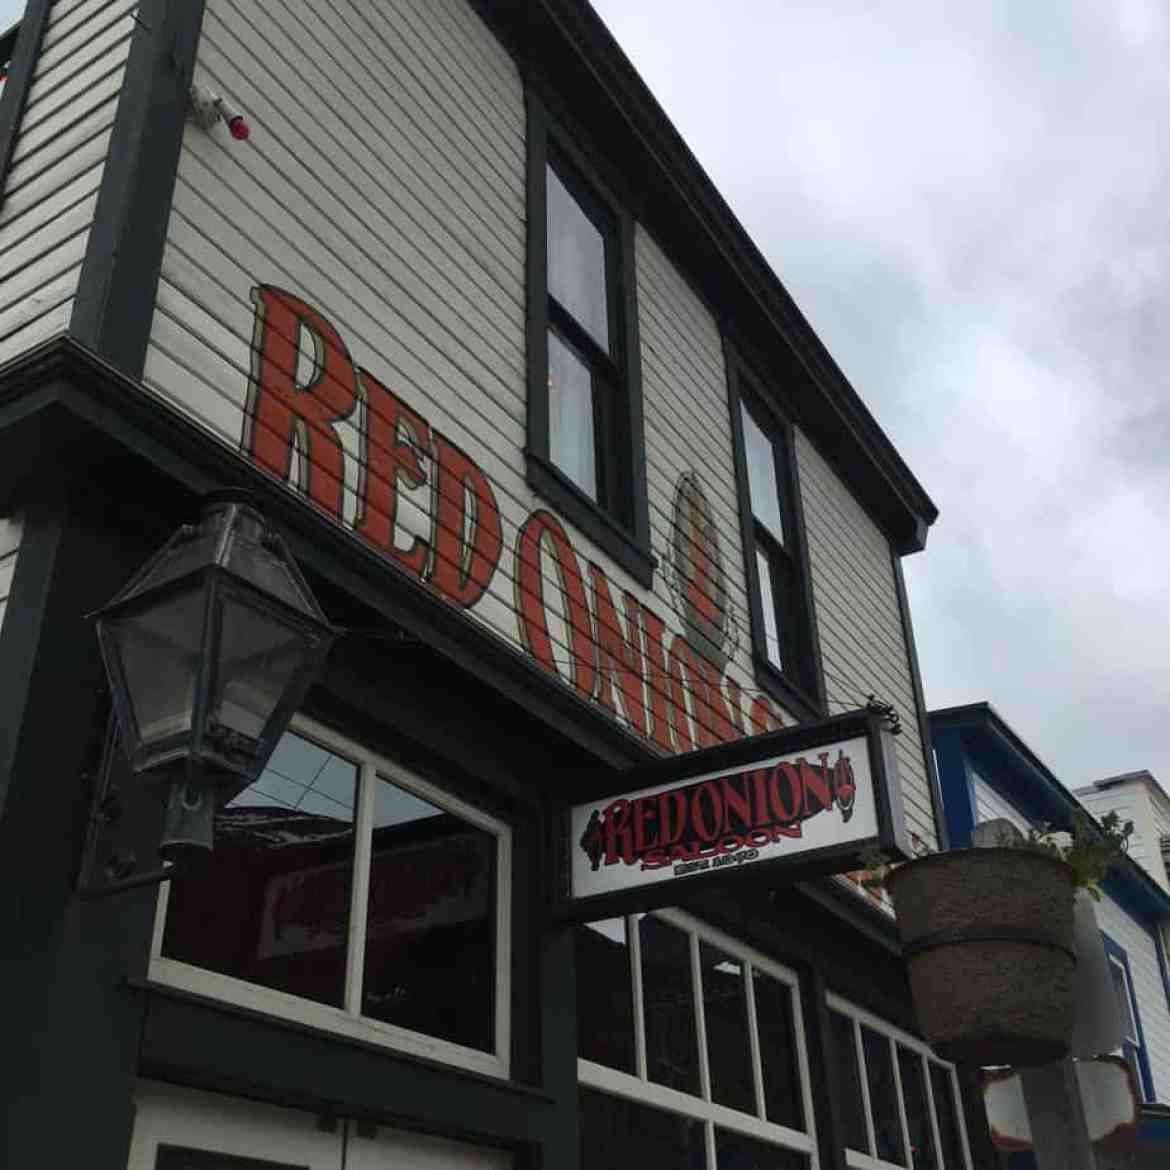 Click to read about excursion from the Alaskan Cruise Disney Wonder in Skagway. I visited the Yukon Pass, Liarsville, Red Onion Saloon, and drank Spruce Tip Beer!